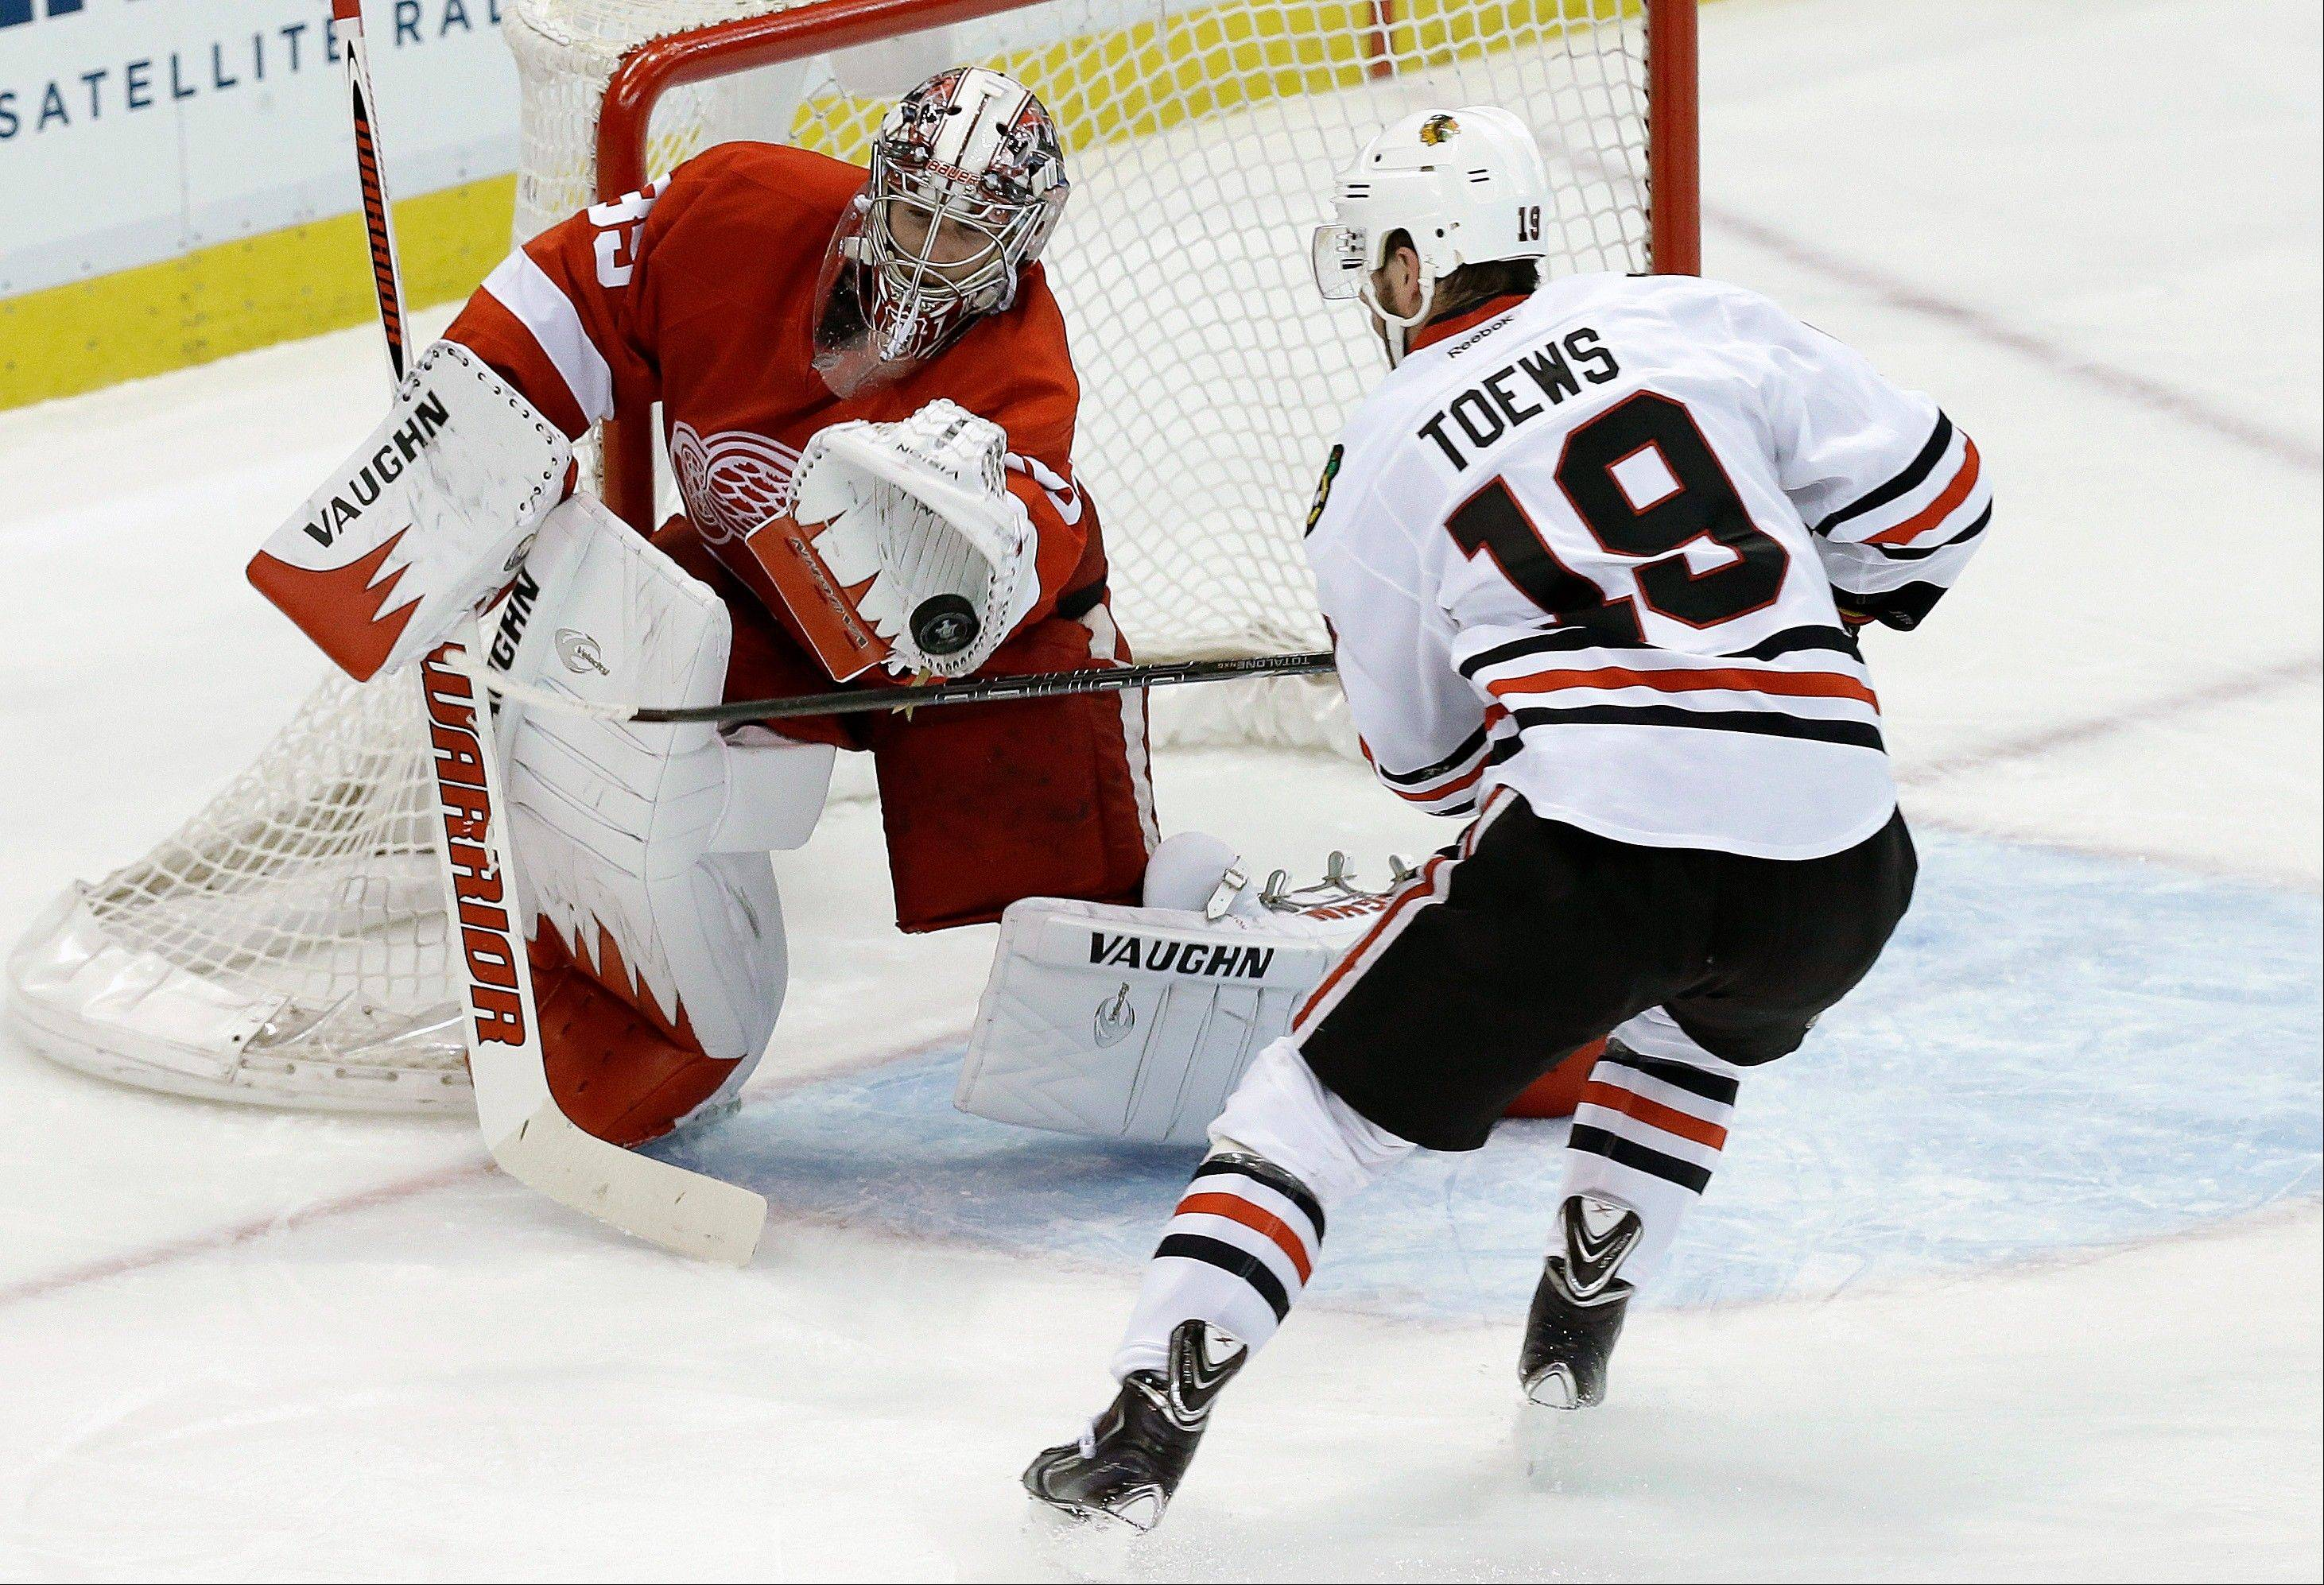 Detroit Red Wings goalie Jimmy Howard (35) stops a shot by Blackhawks center Jonathan Toews (19) during the second period in Game 4 of the Western Conference semifinals last night. Even Toews' frustration boiled over as he got angry and incurred penalties.